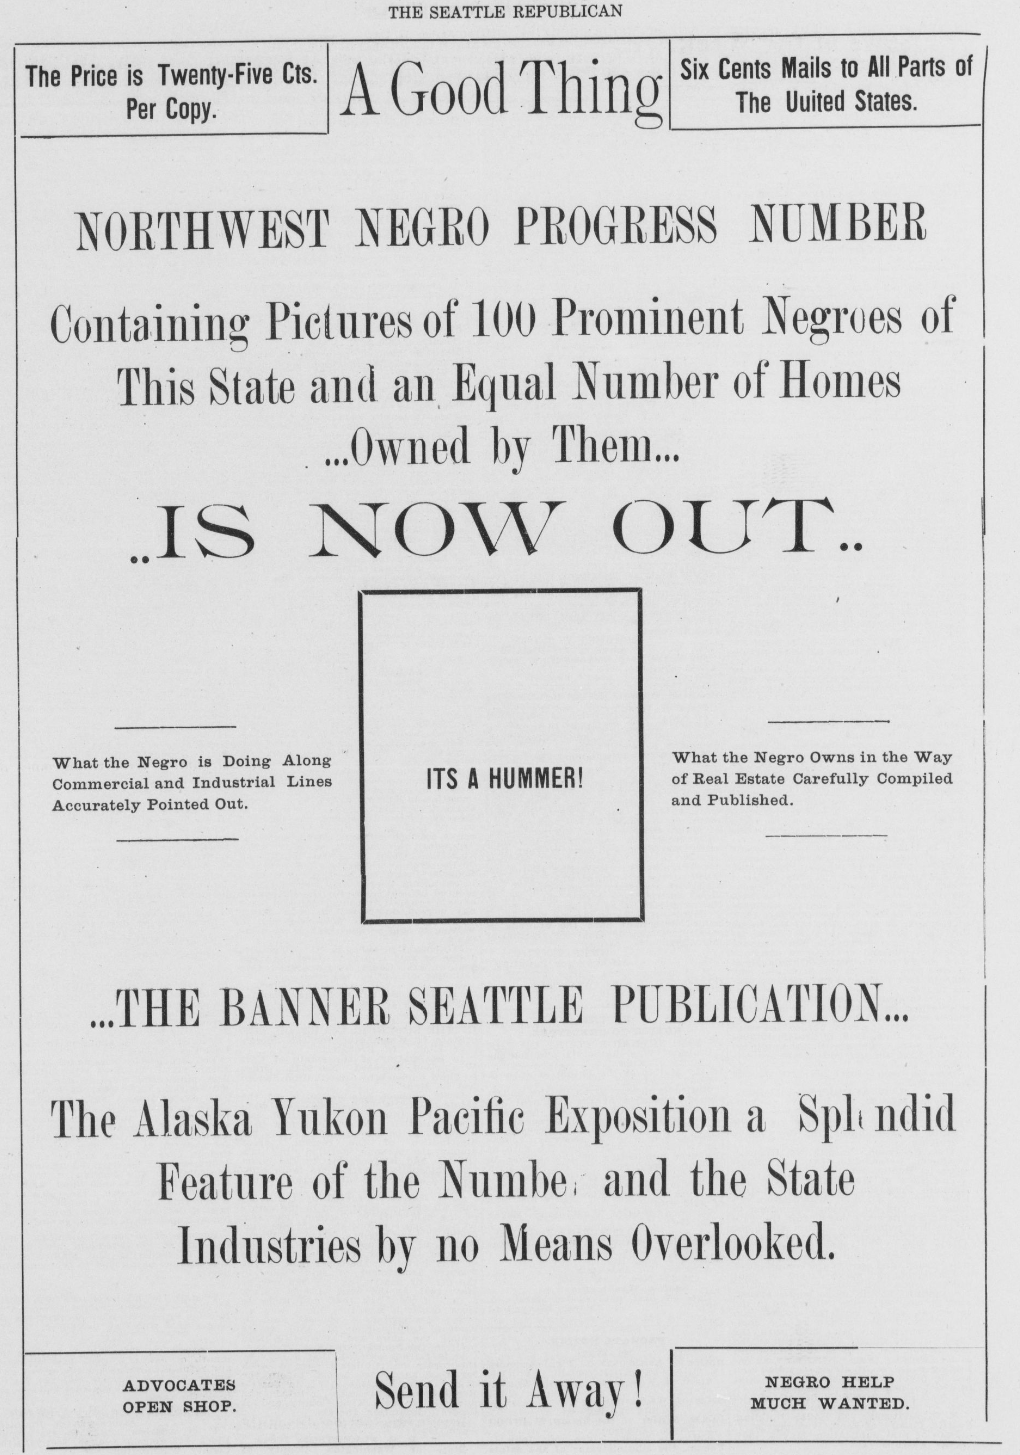 """Promotional, full-page ad for Northwest Negro Progress Number in the Seattle Republican, featuring Seattle's Black families. """"Containing picturs of 100 Prominent Negroes of This State and an Equal Number of Homes...Owned by Them... .. IS NOW OUT."""""""